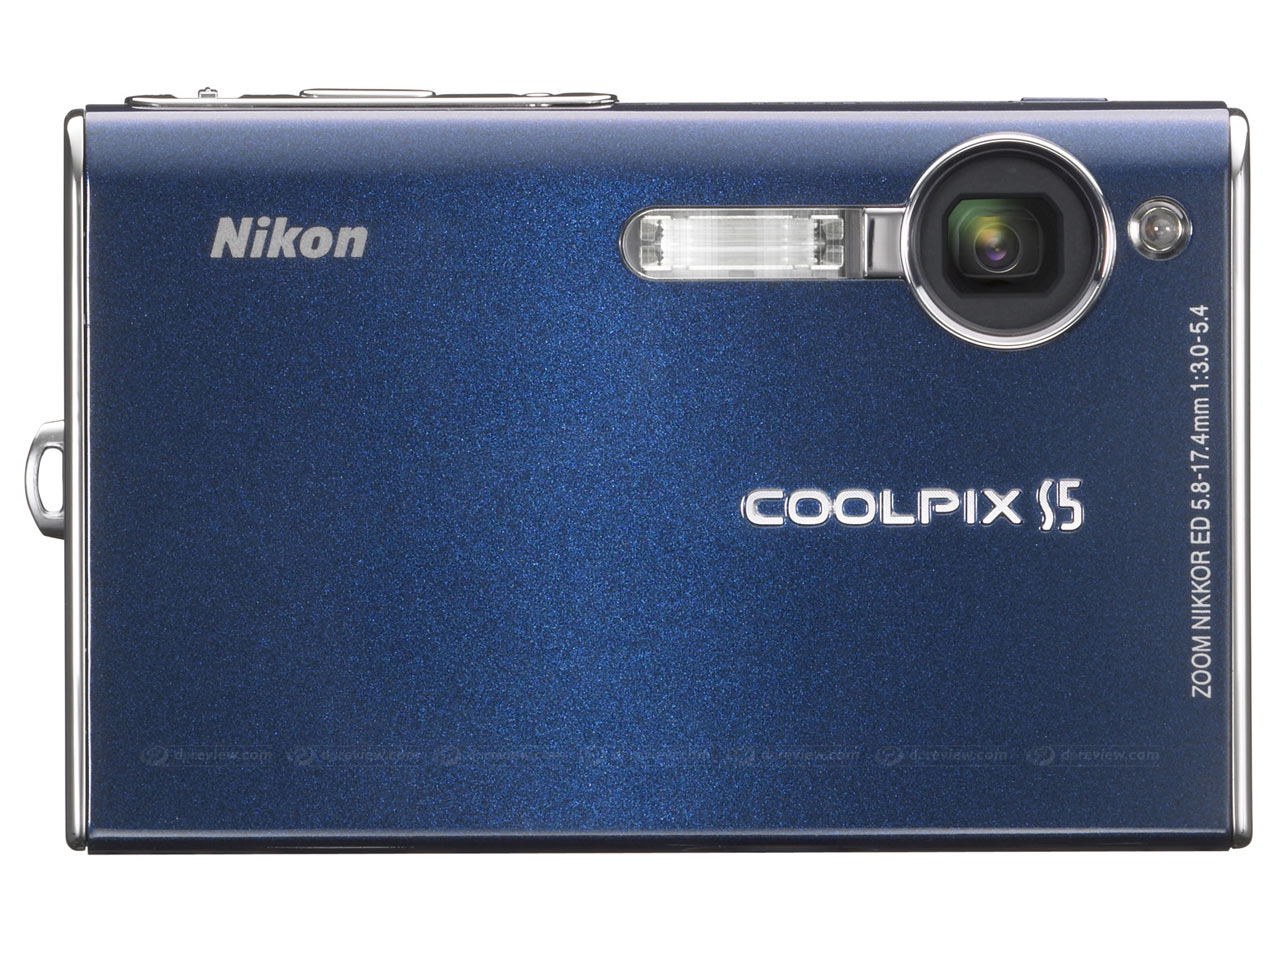 nikon coolpix s5 and s6 digital photography review rh dpreview com Nikon Coolpix B500 Nikon Coolpix Waterproof